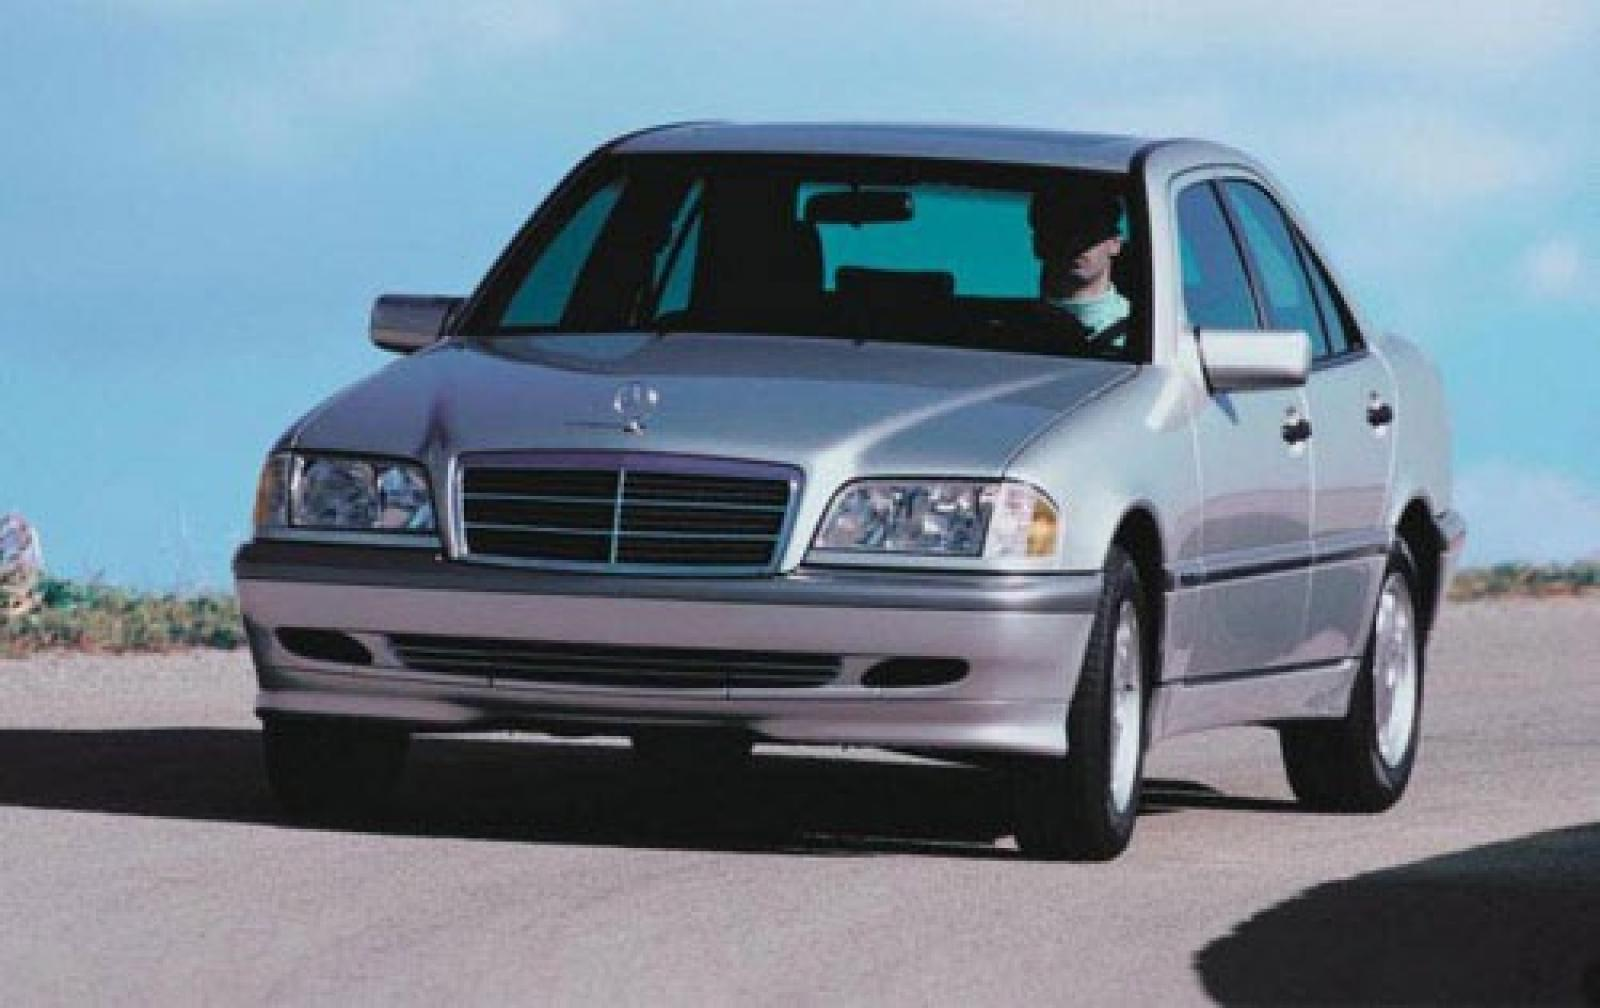 2000 mercedes benz c class information and photos zombiedrive 800 1024 1280 1600 origin 2000 mercedes benz sciox Images